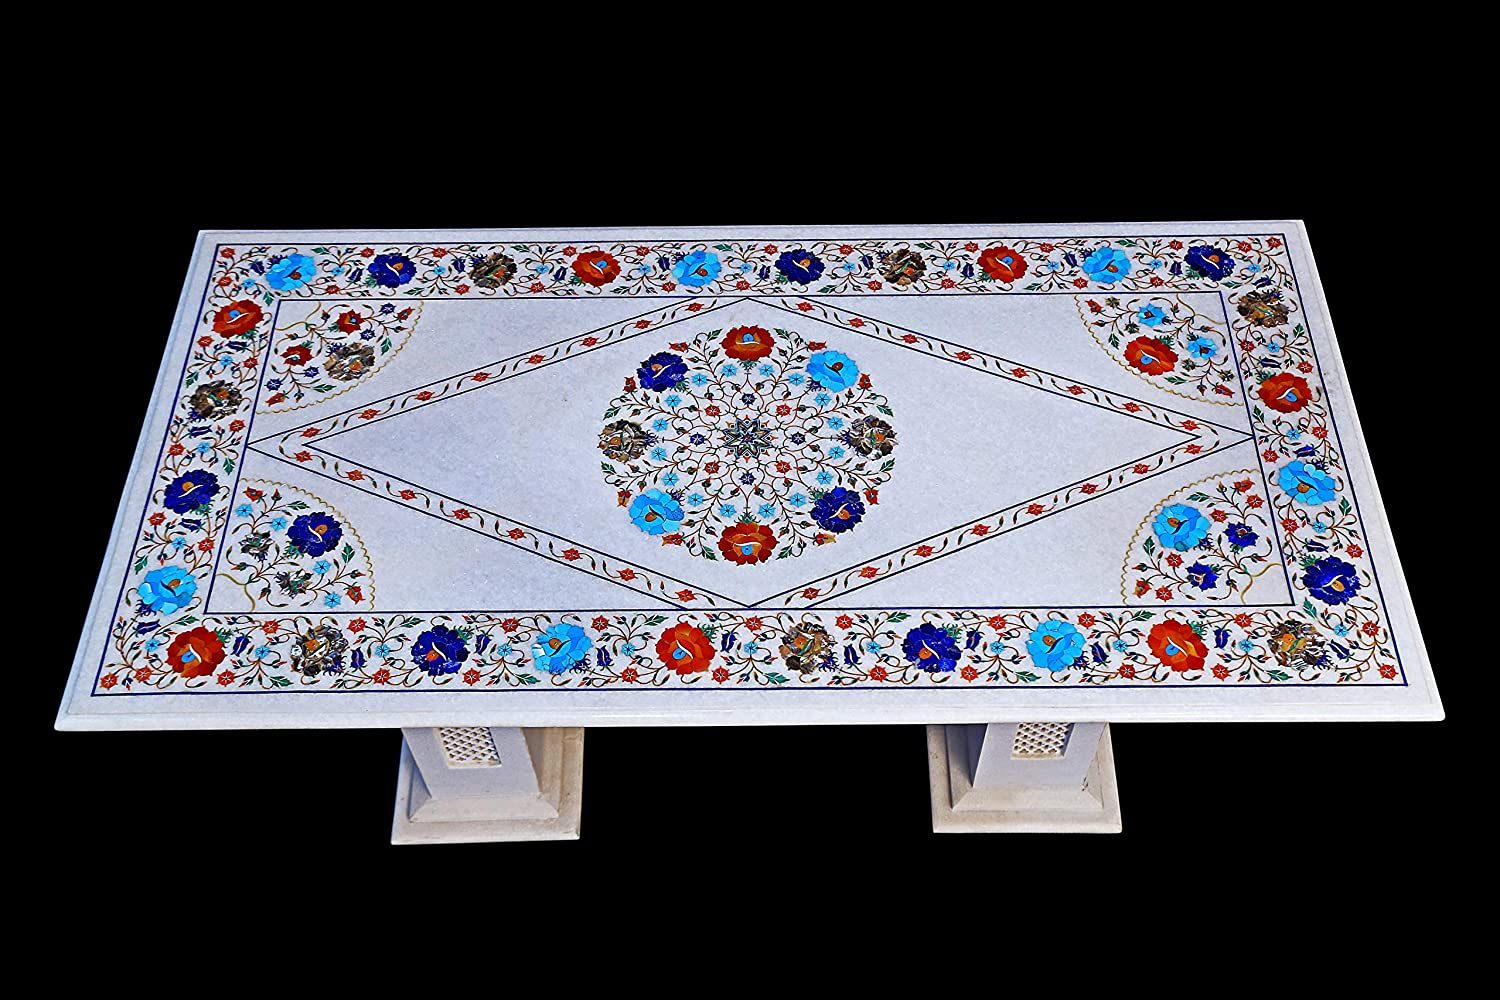 Marble Floral Center Coffee Table Top Pietra Dura Handmade Art Home Decor octagon shape made by rural Artisan from Agra Size 12 x 12 inch